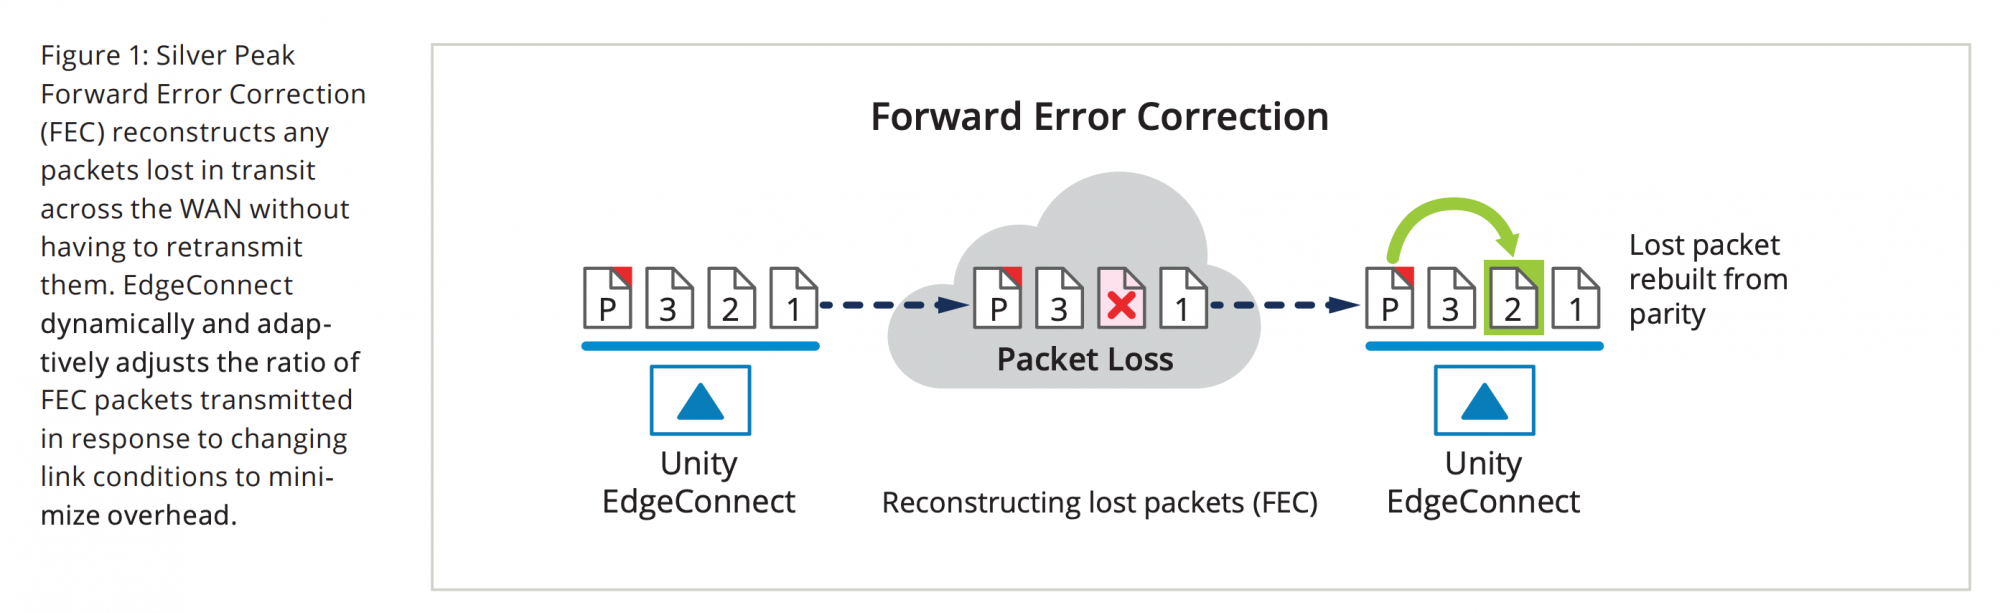 Figure 1: Silver Peak Forward Error Correction (FEC) reconstructs any packets lost in transit across the WAN without having to retransmit them. EdgeConnect  dynamically and adaptively adjusts the ratio of FEC packets transmitted in response to changing link conditions to minimize overhead.